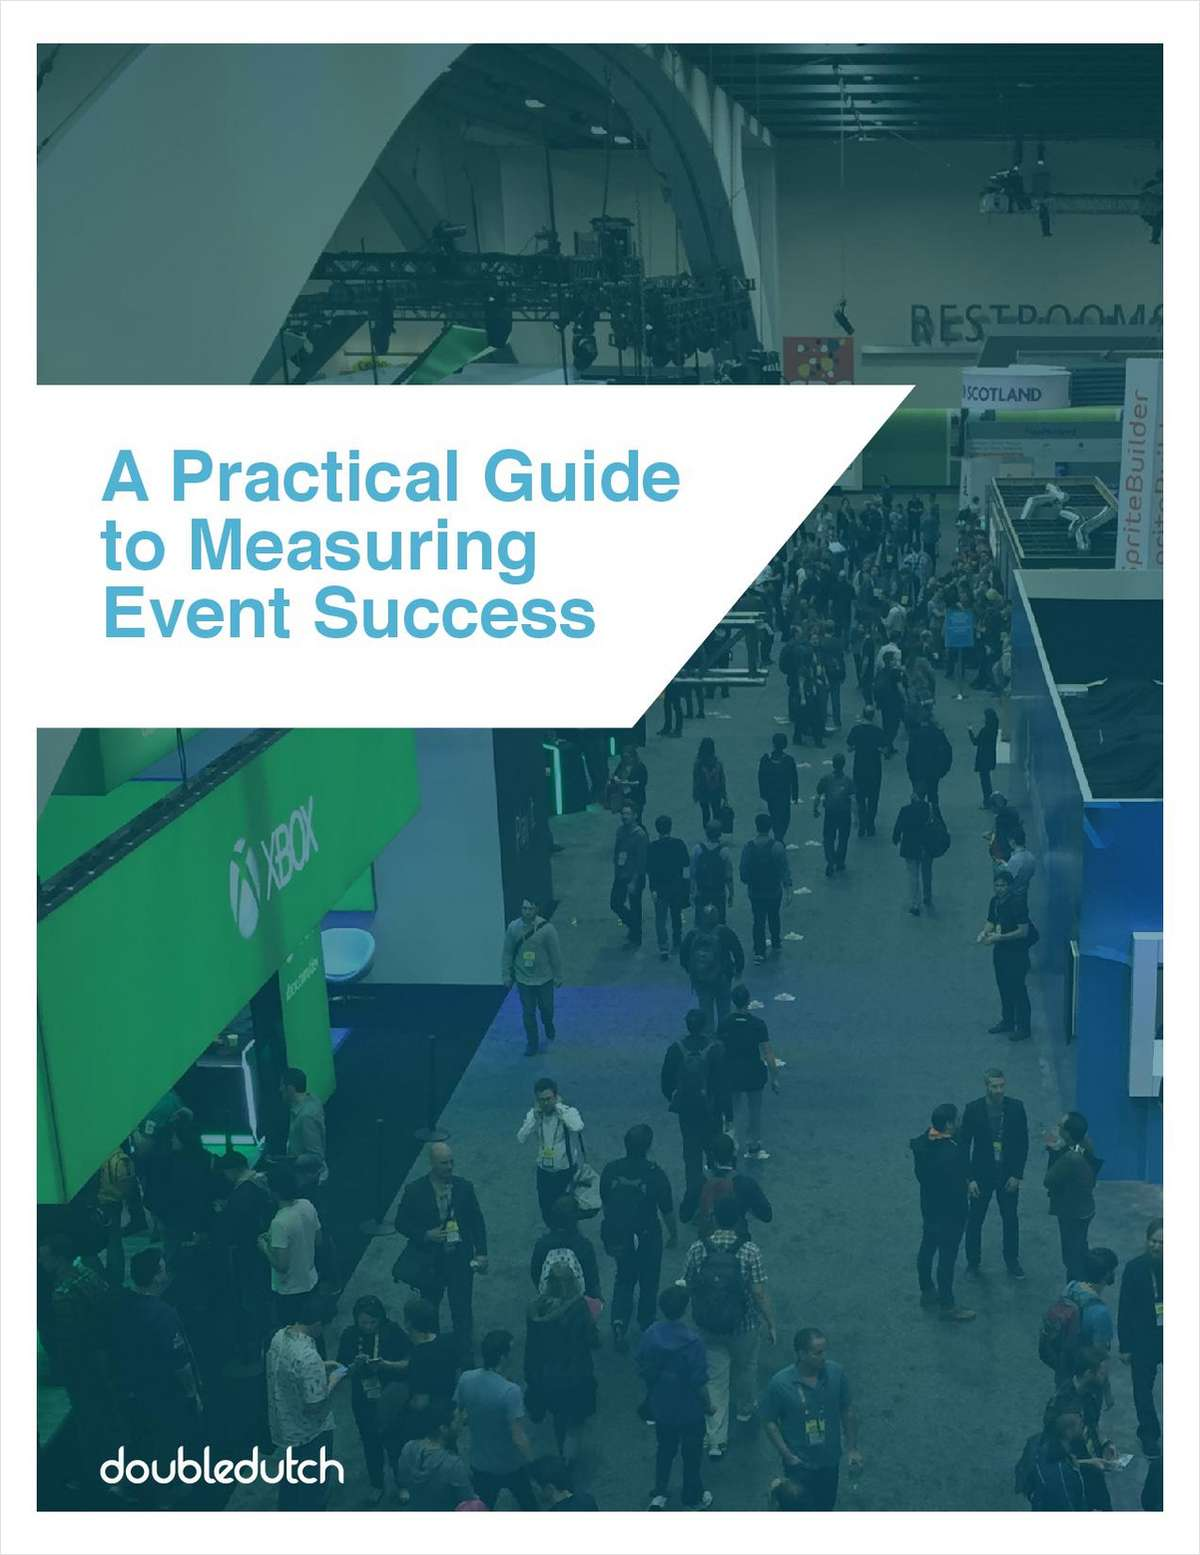 A Practical Guide to Measuring Event Success